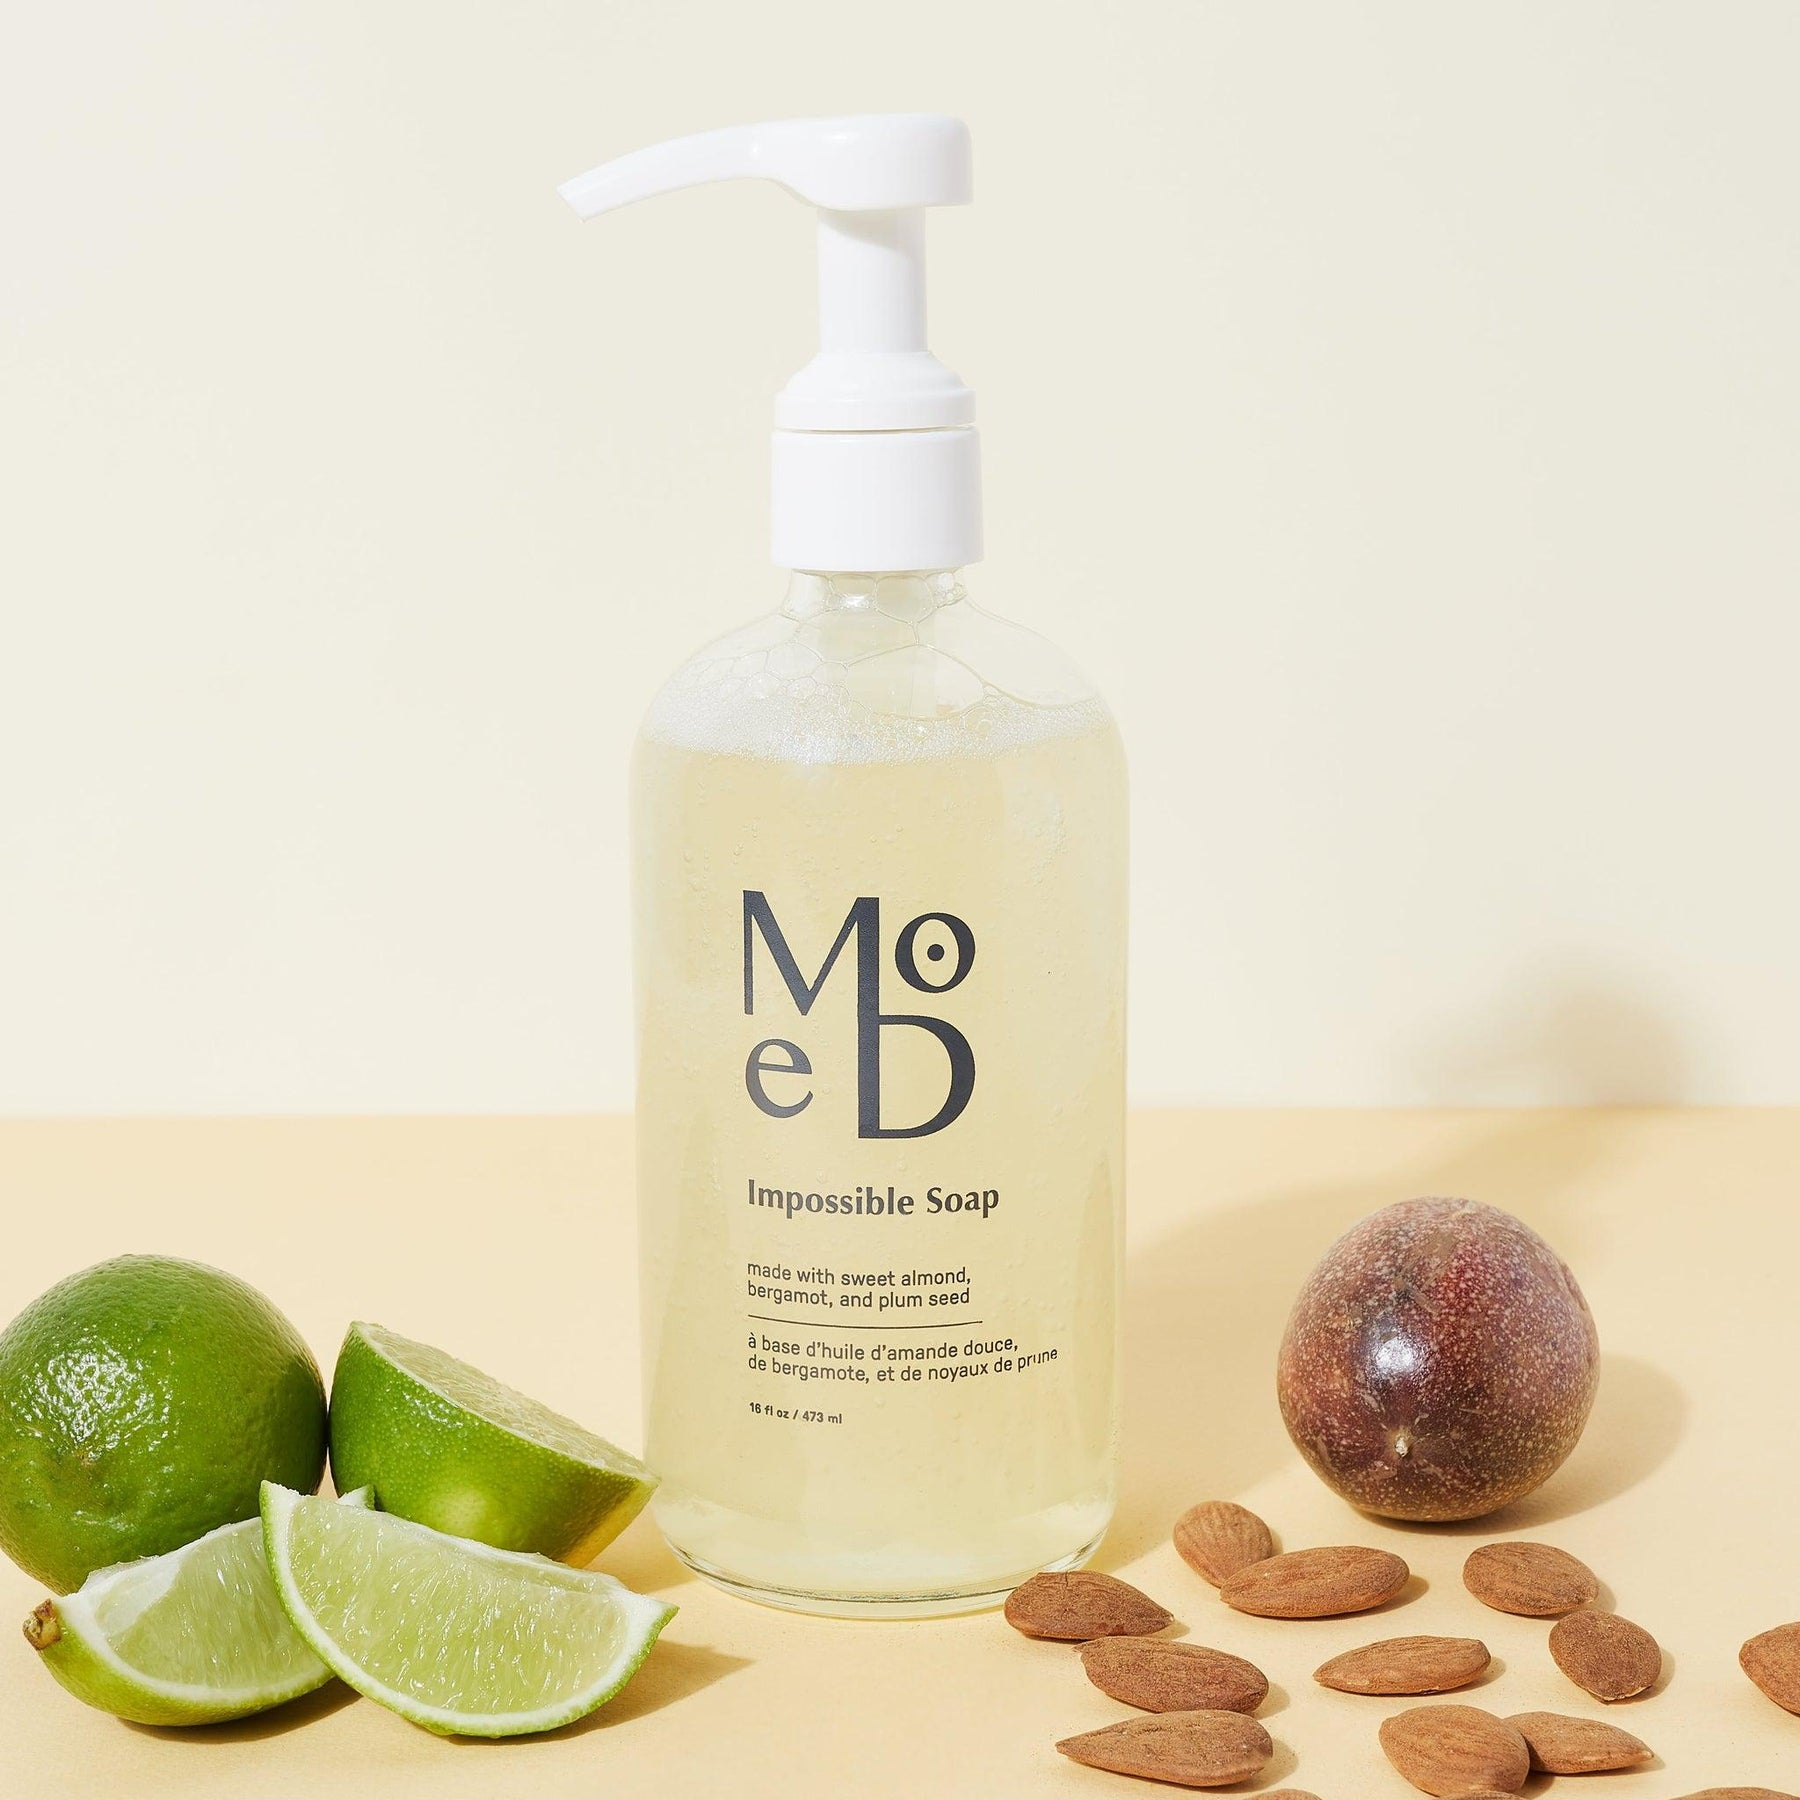 Detox Mode Impossible Soap by The Detox Market